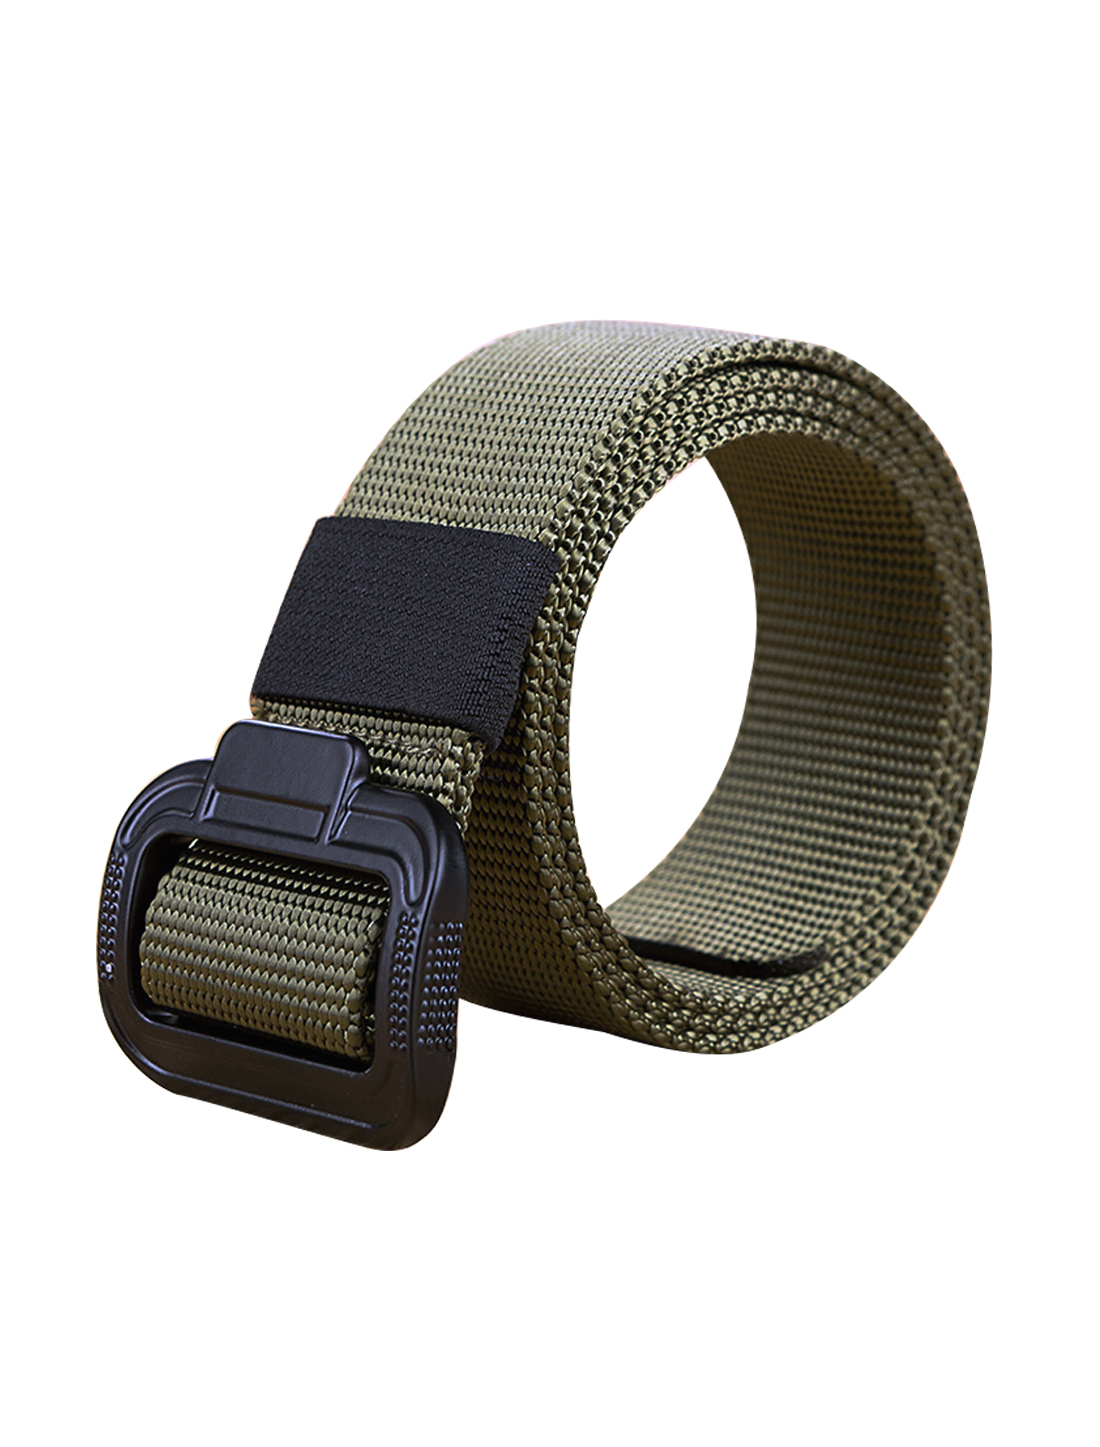 "Men Military Style Canvas Outdoor No Hole Slide Buckle Belt 1 5/8"" Army Green"